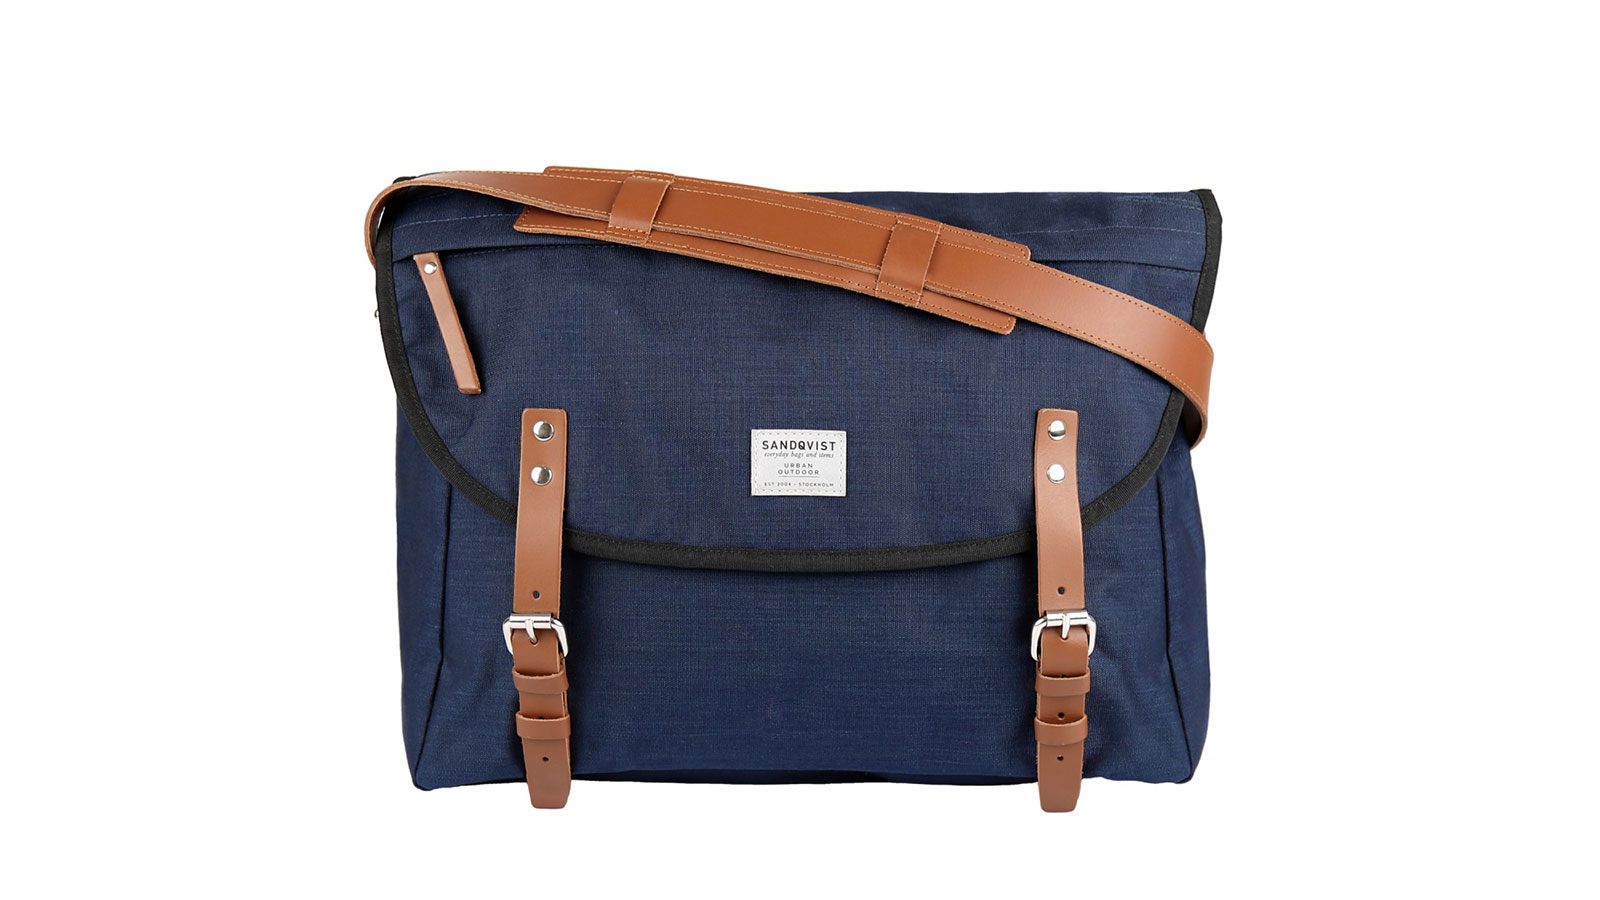 Sandqvist ERik Blue Messenger Bag | best messenger bags for men